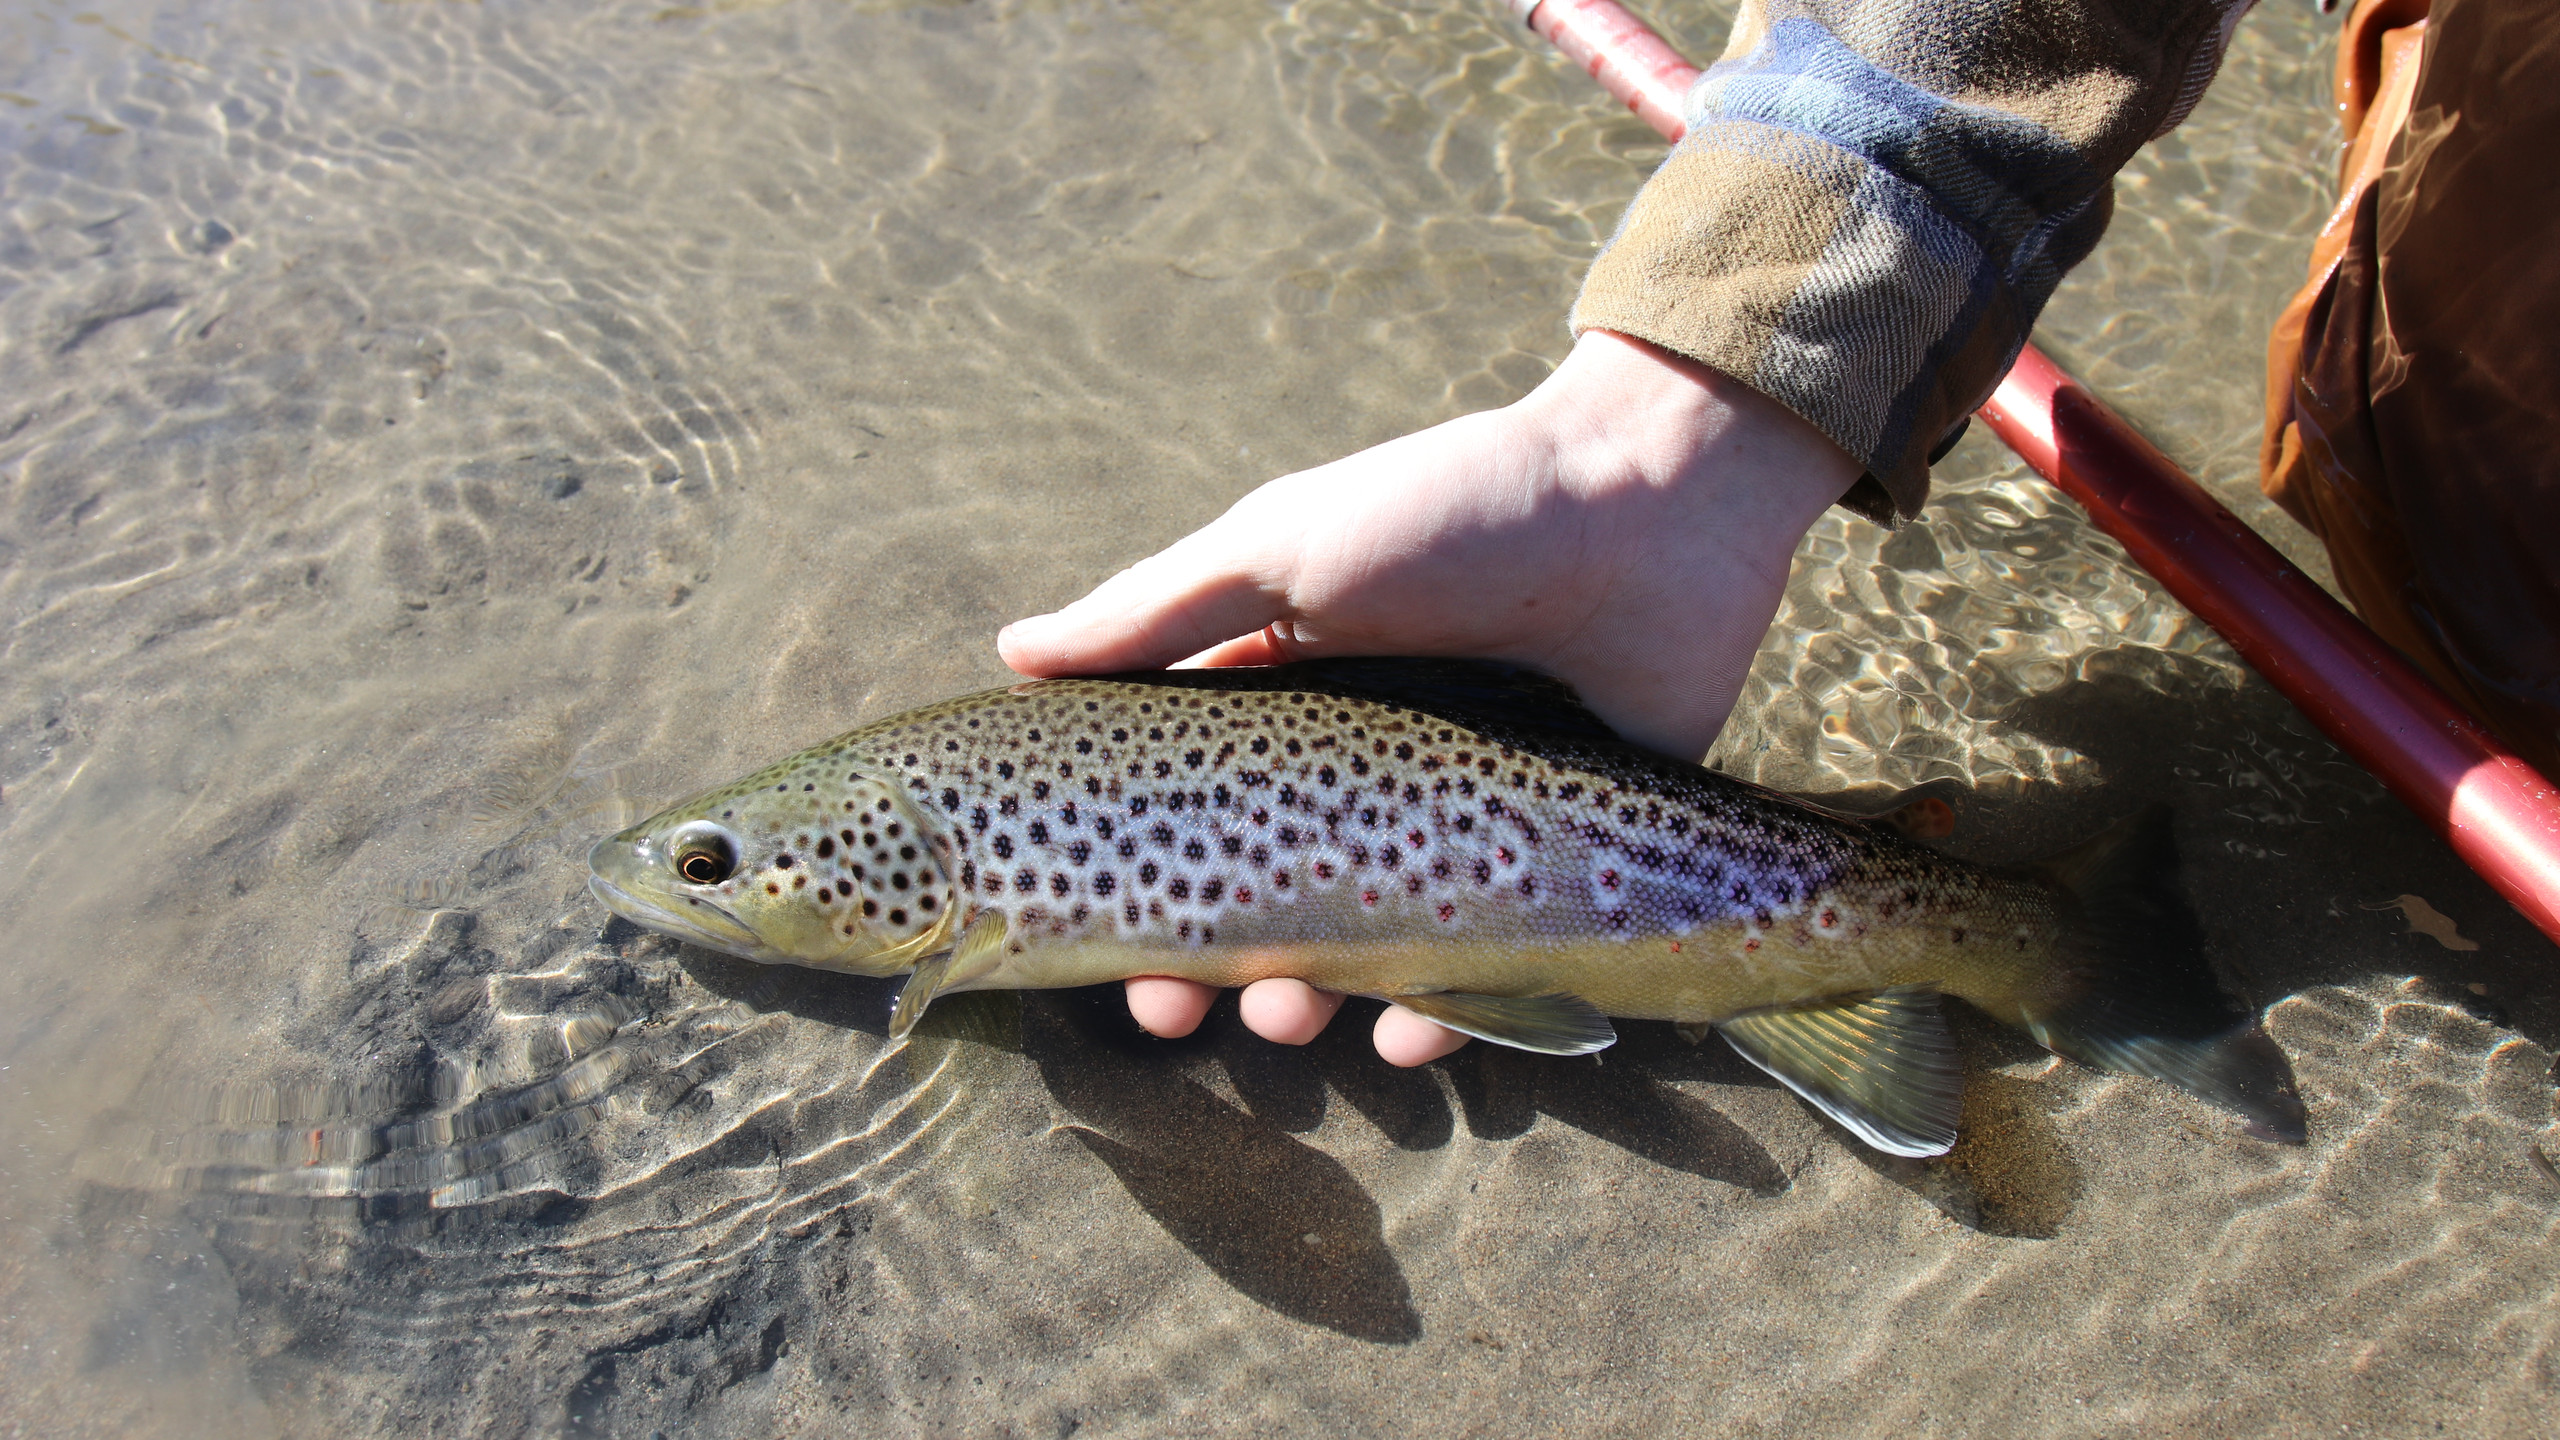 This December brown trout fell to a Walt's Worm nymphed through a slow deep run.